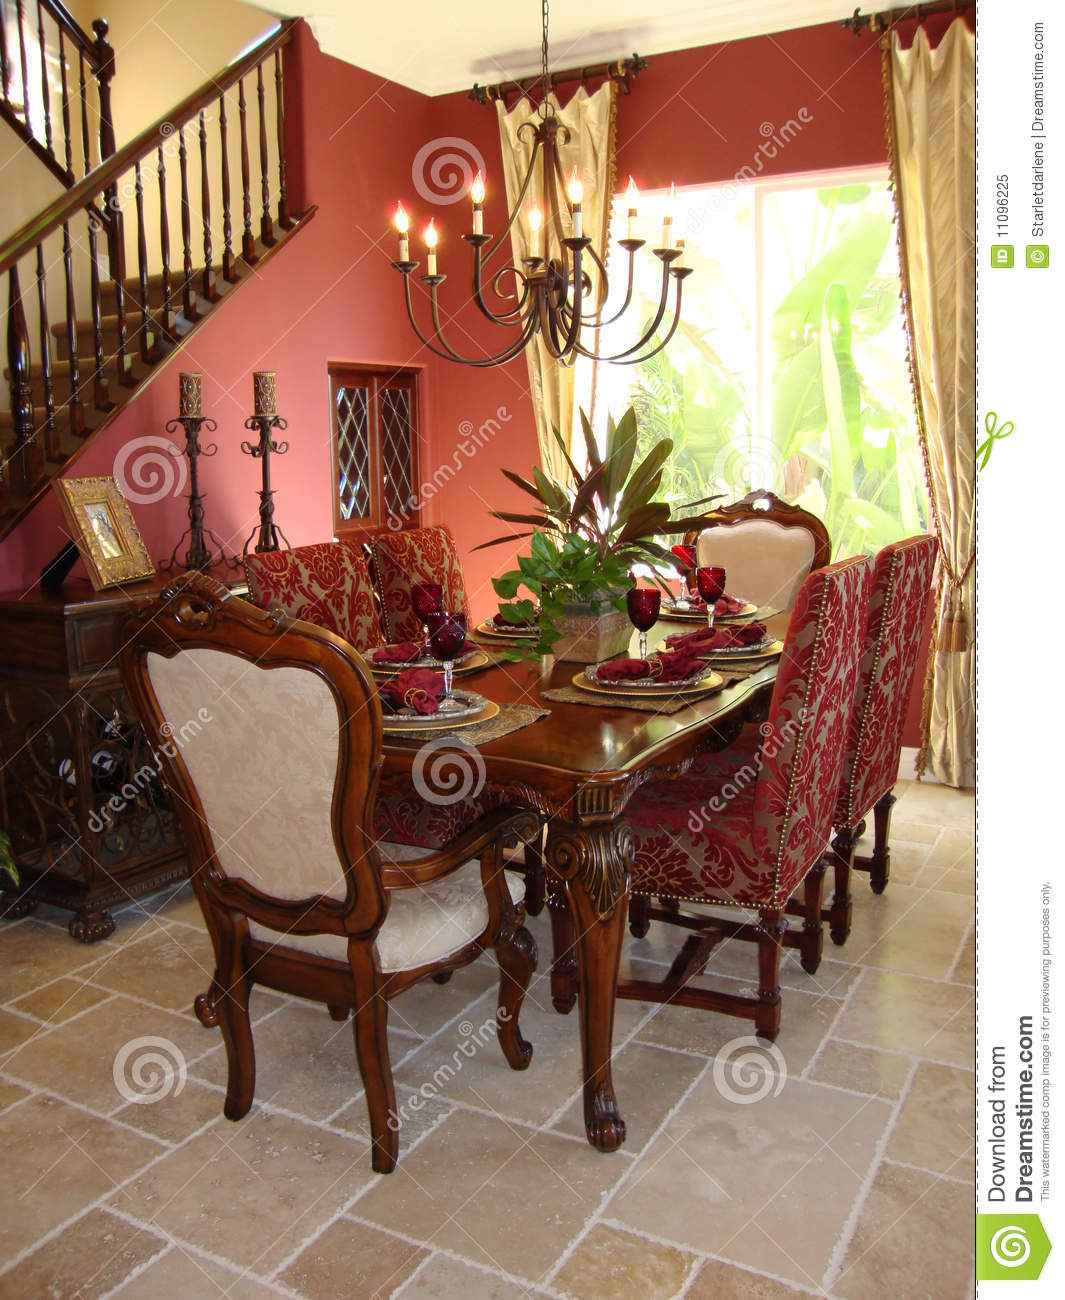 Dining Room Red Elegant Stock Image Image Of Plants 11096225